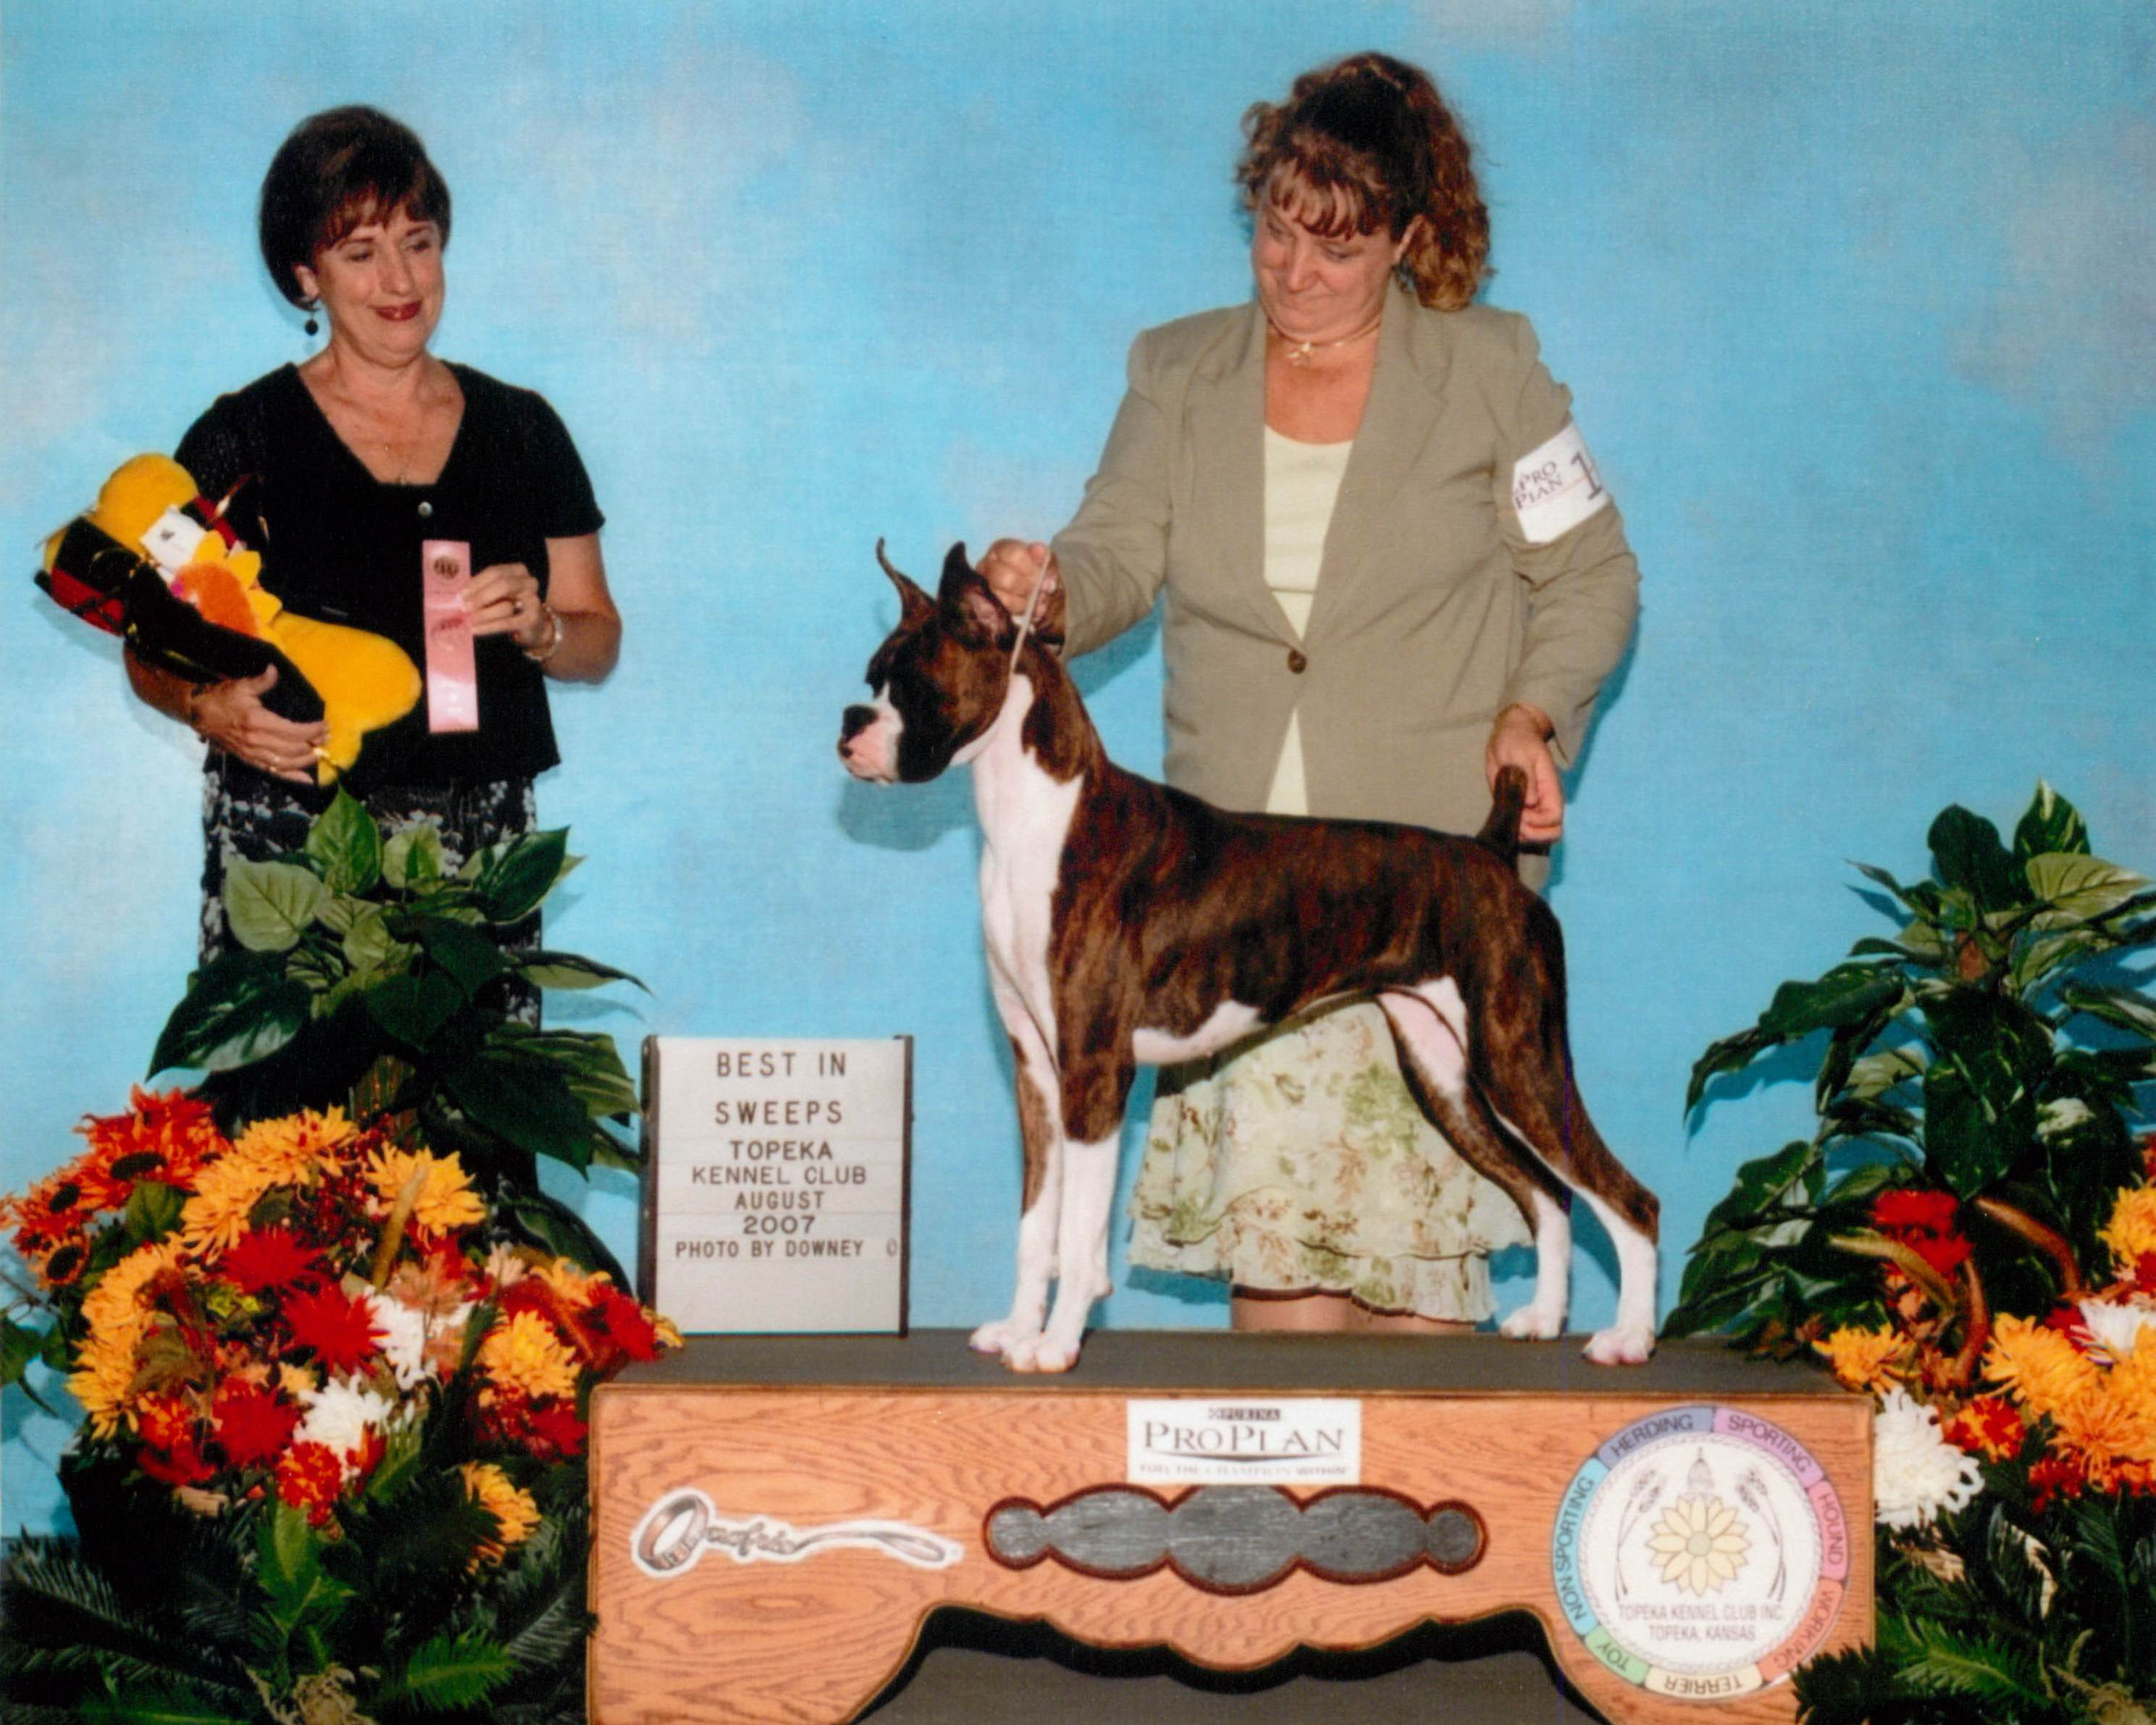 Grand Sweepstakes & Best Puppy @ 2007 Specialty Show #2